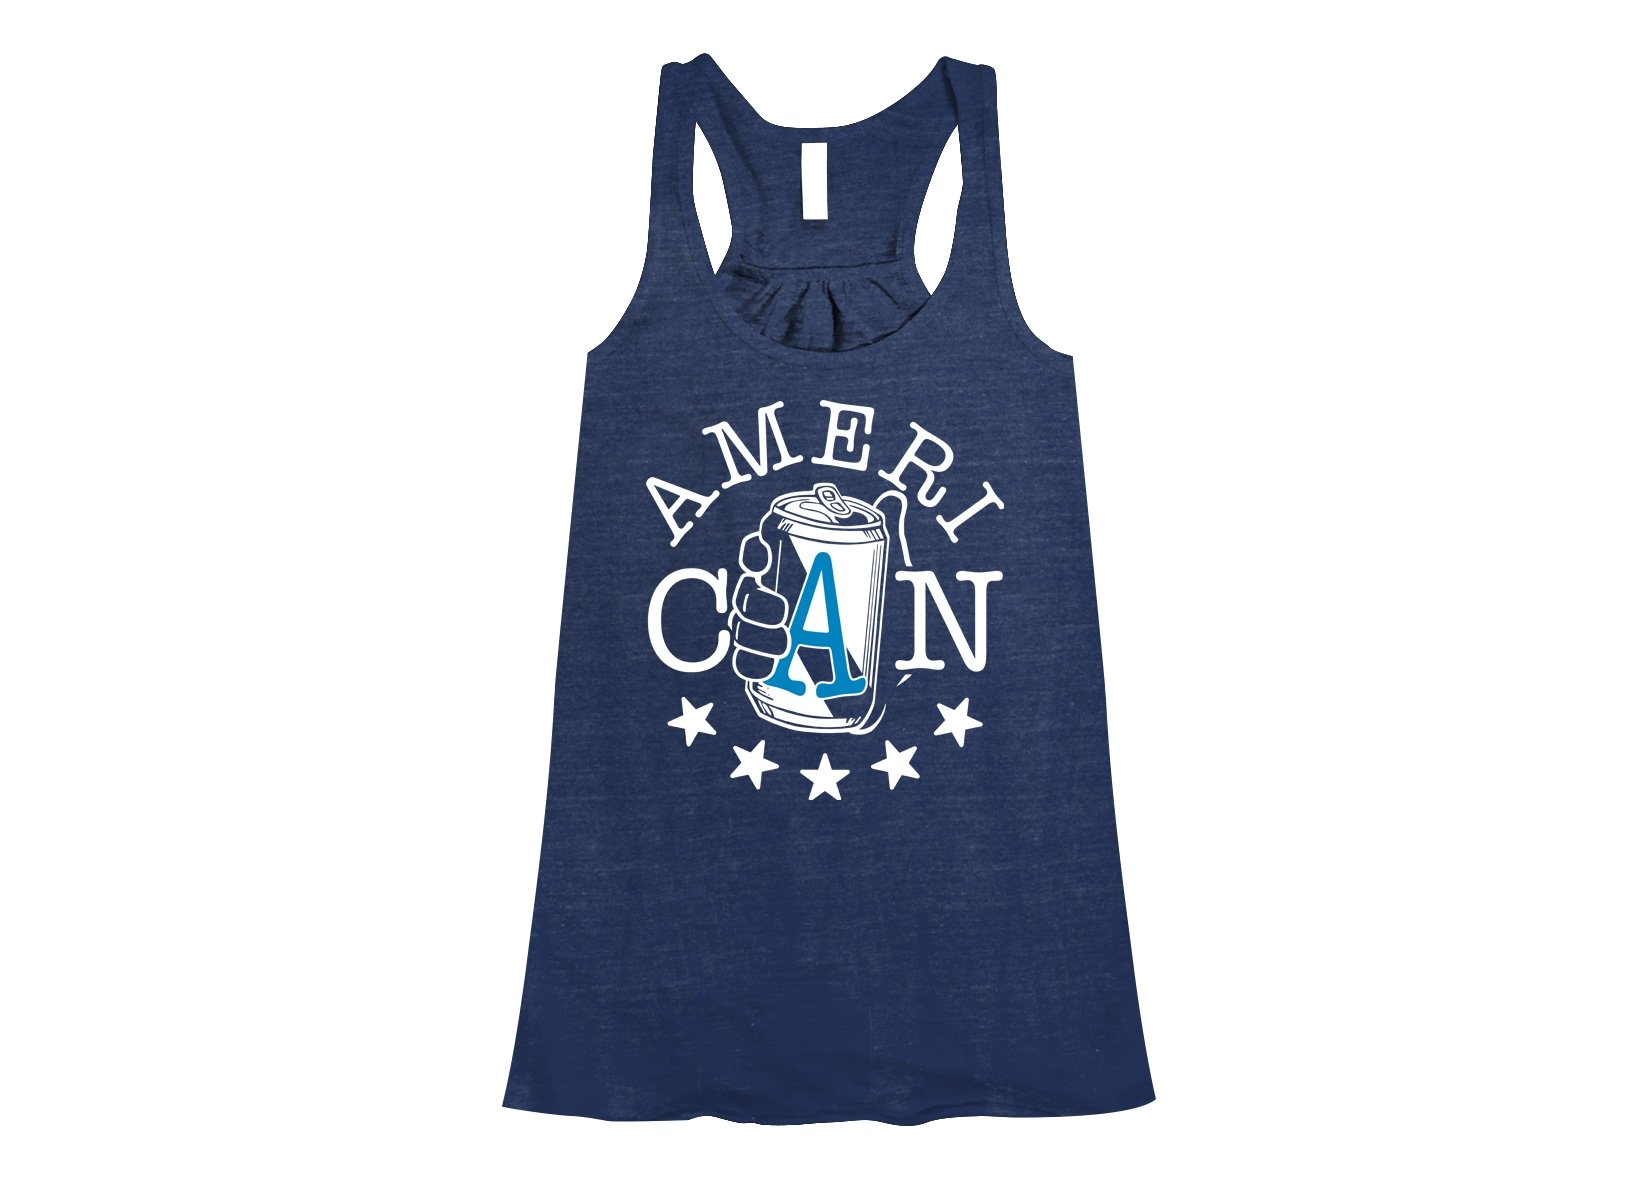 AmeriCAN on Womens Tanks T-Shirt